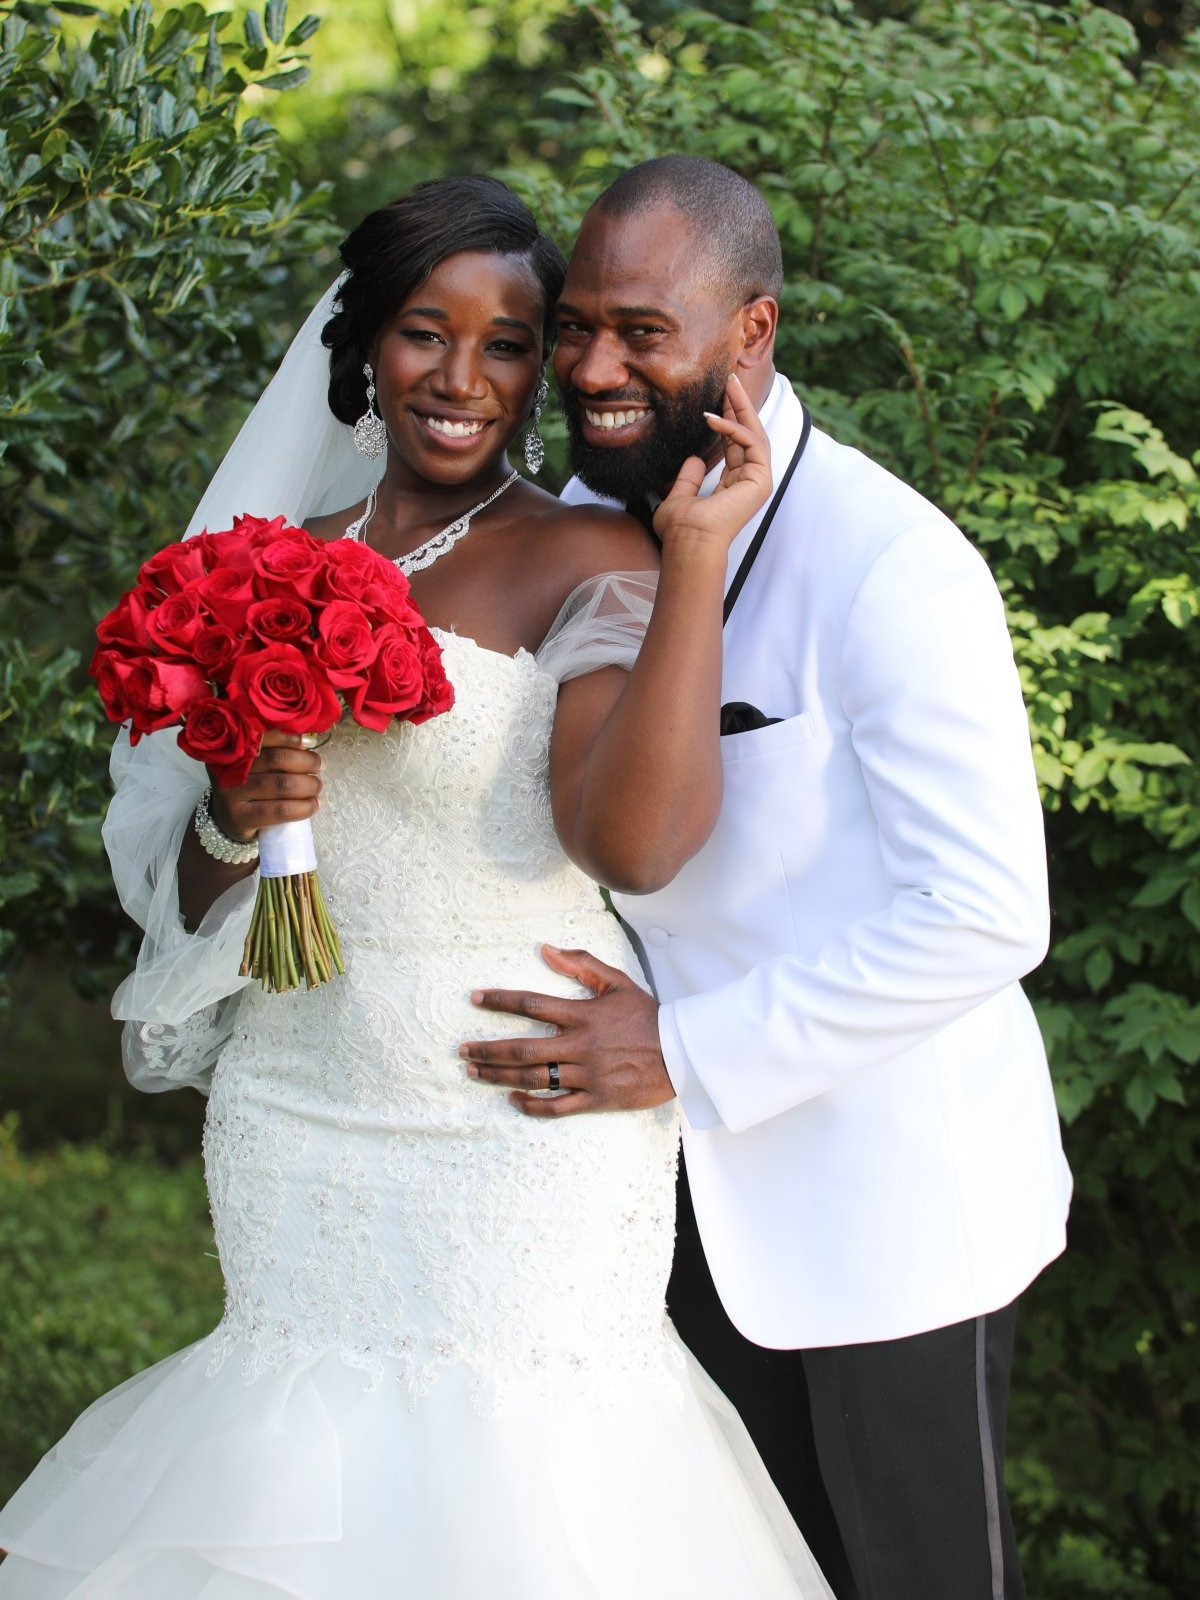 Married at First Sight Season 9 couples revealed by